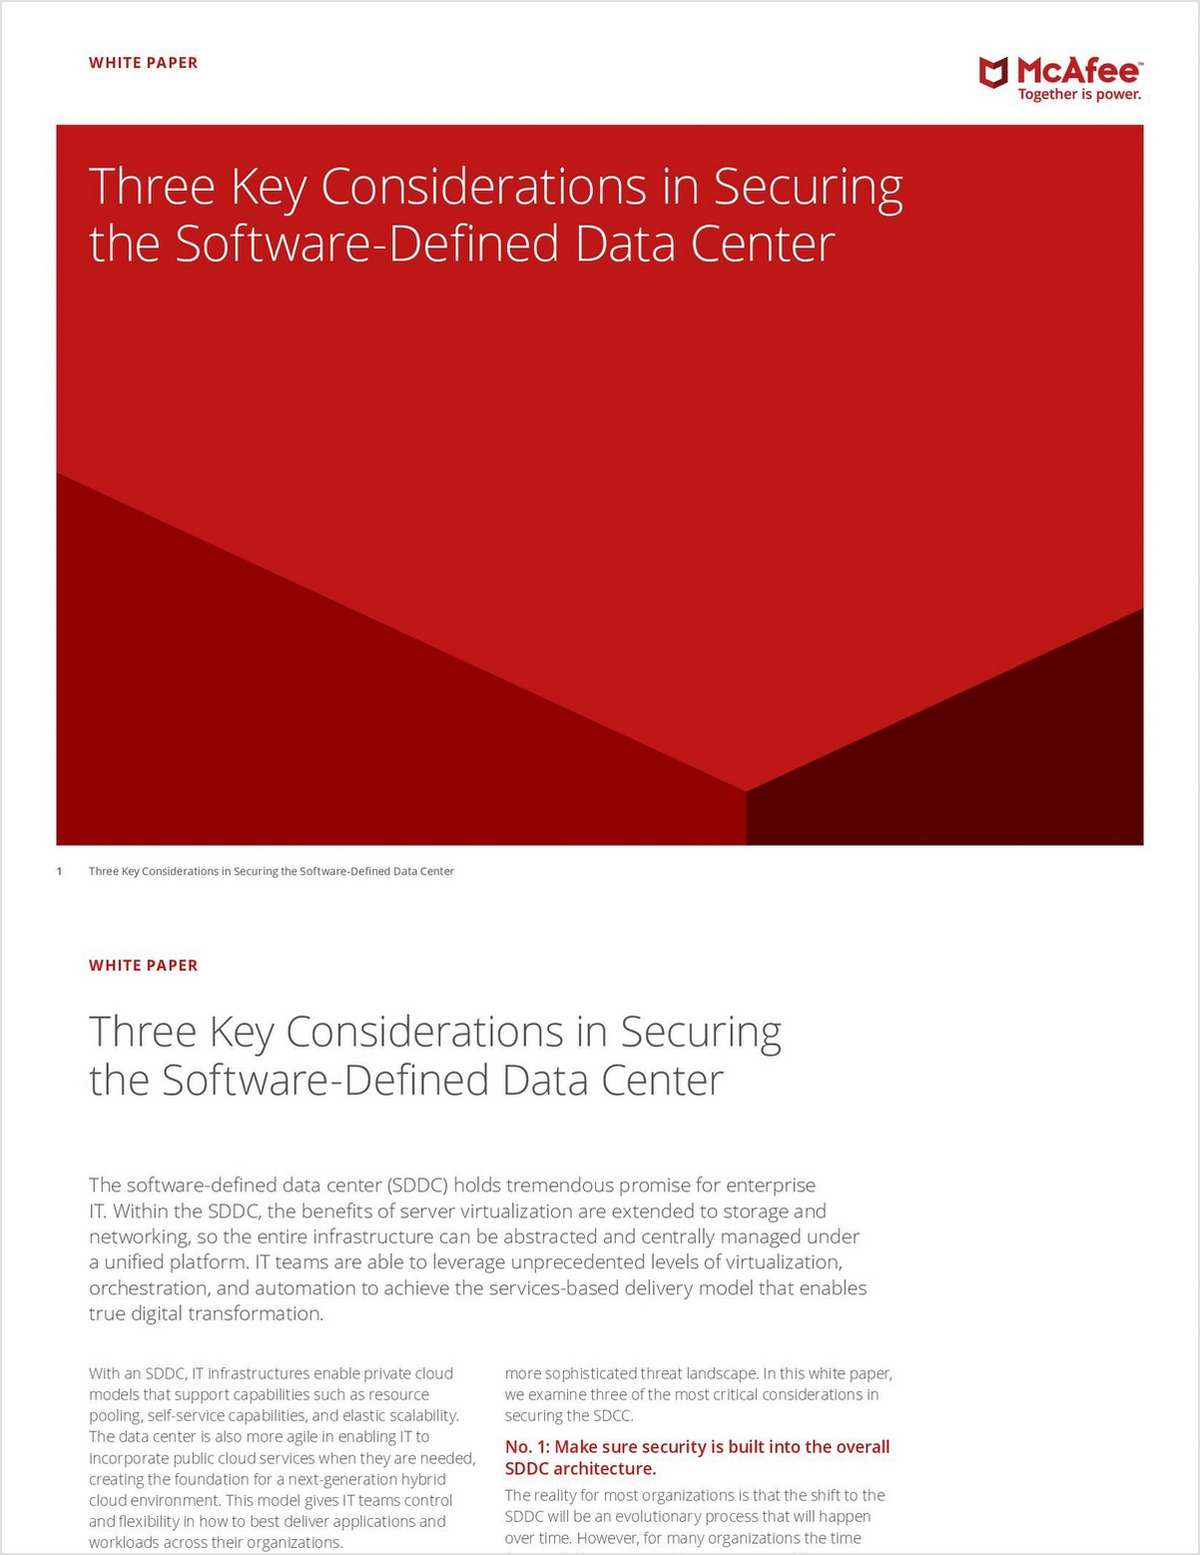 Three Key Considerations in Securing the Software-Defined Data Center